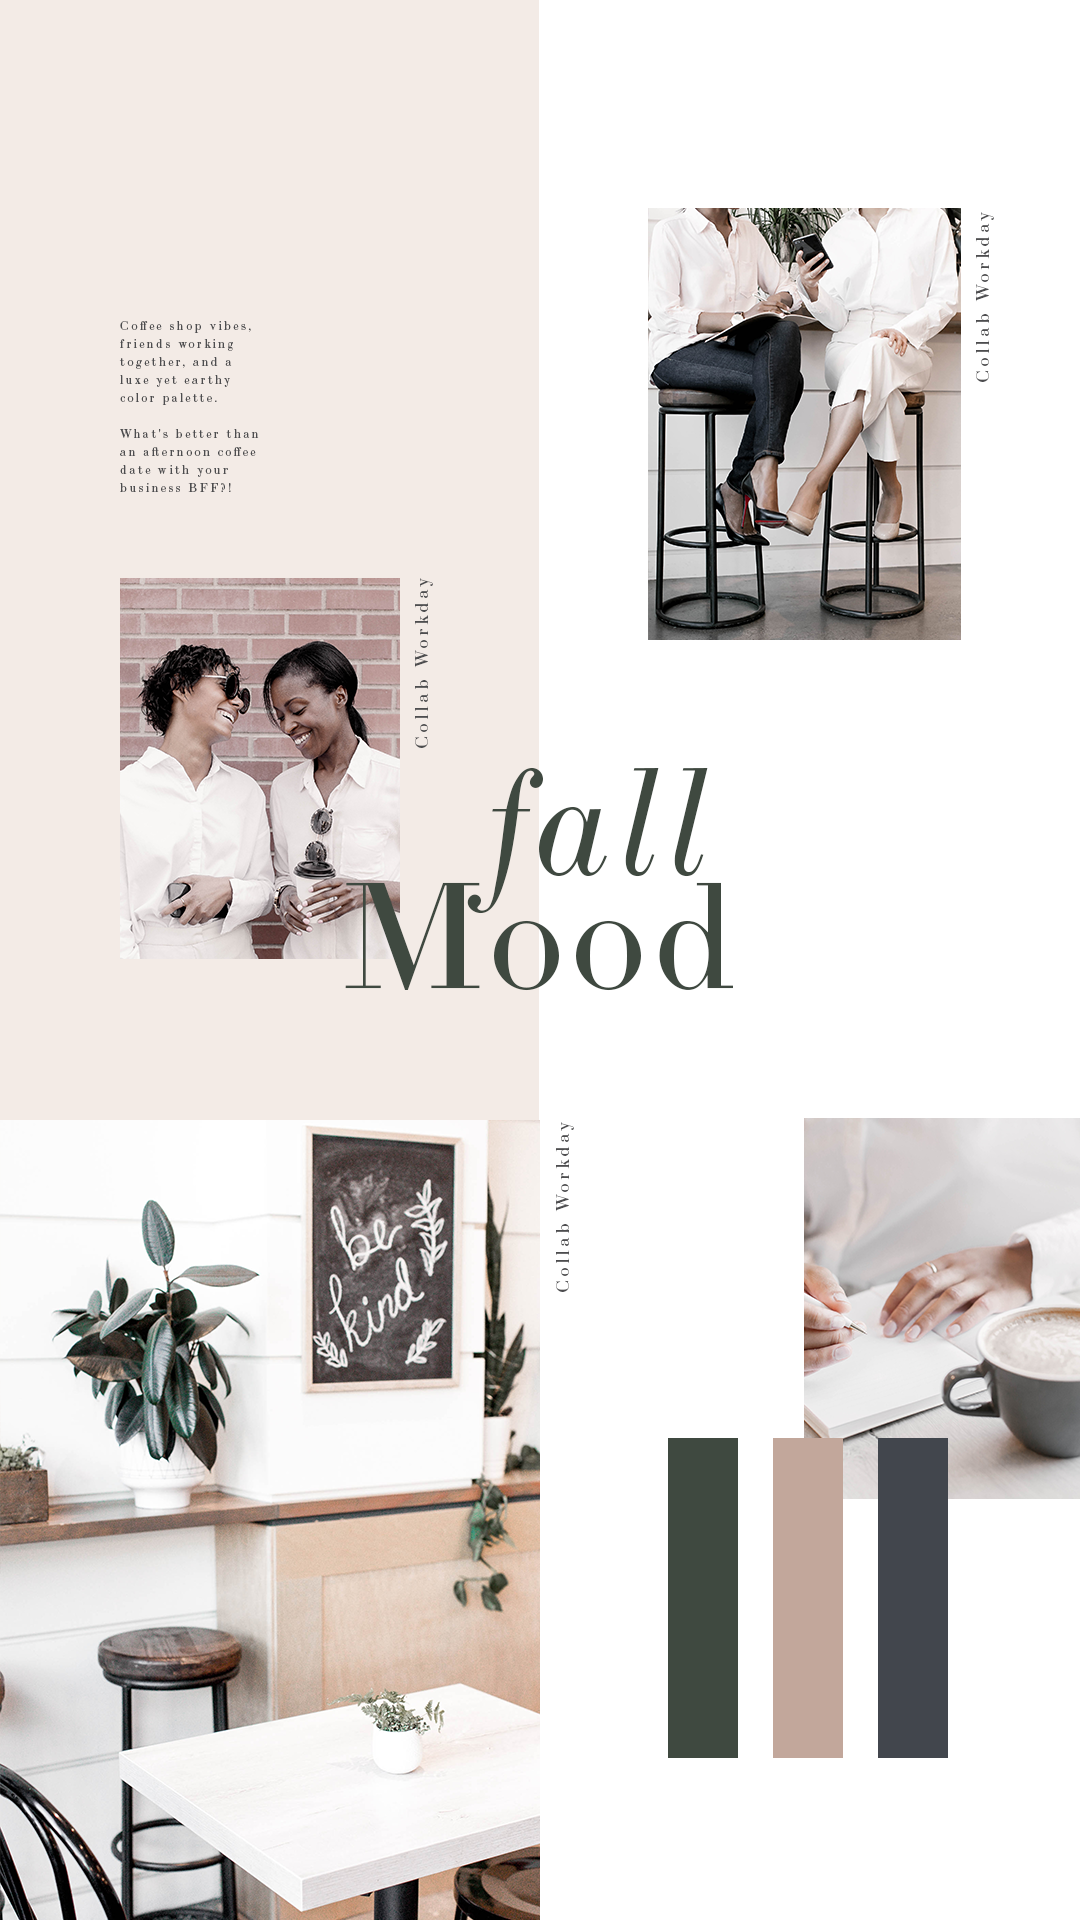 Taupe, forrest green and dark blue combine to create a sophisticated palette of stock images for business coaches, bloggers and creative women entrepreneurs. Click for more branding inspiration!